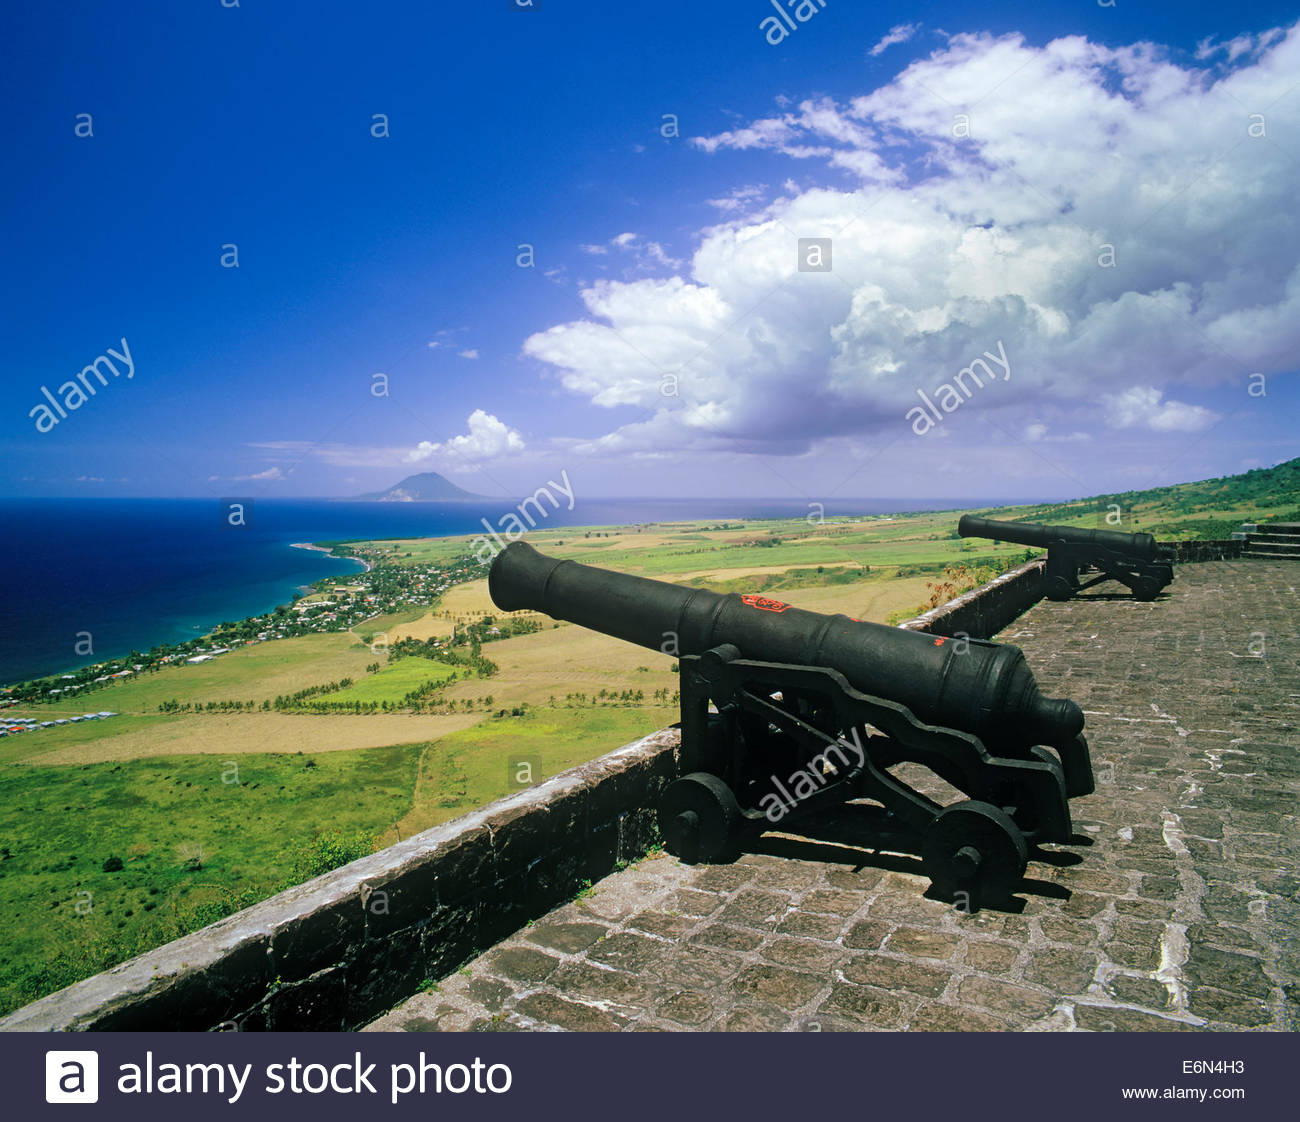 brimstone-hill-fortress-on-the-caribbean